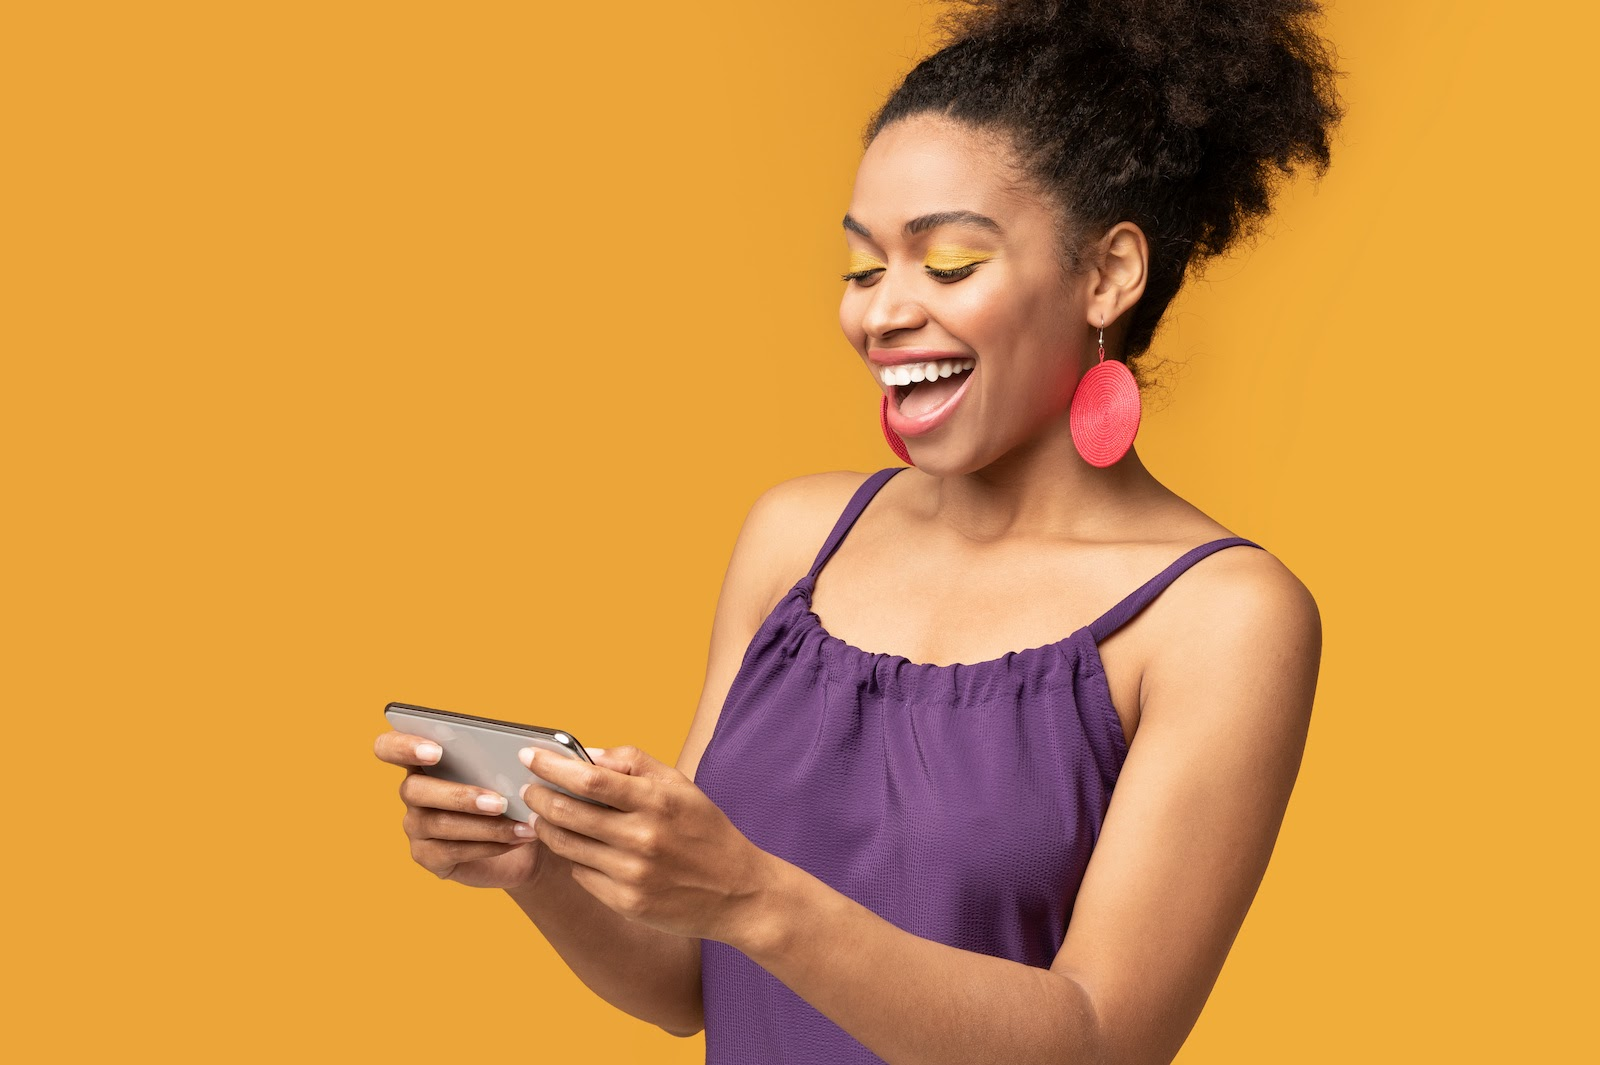 A woman enjoys a gamified engagement marketing experience on her phone